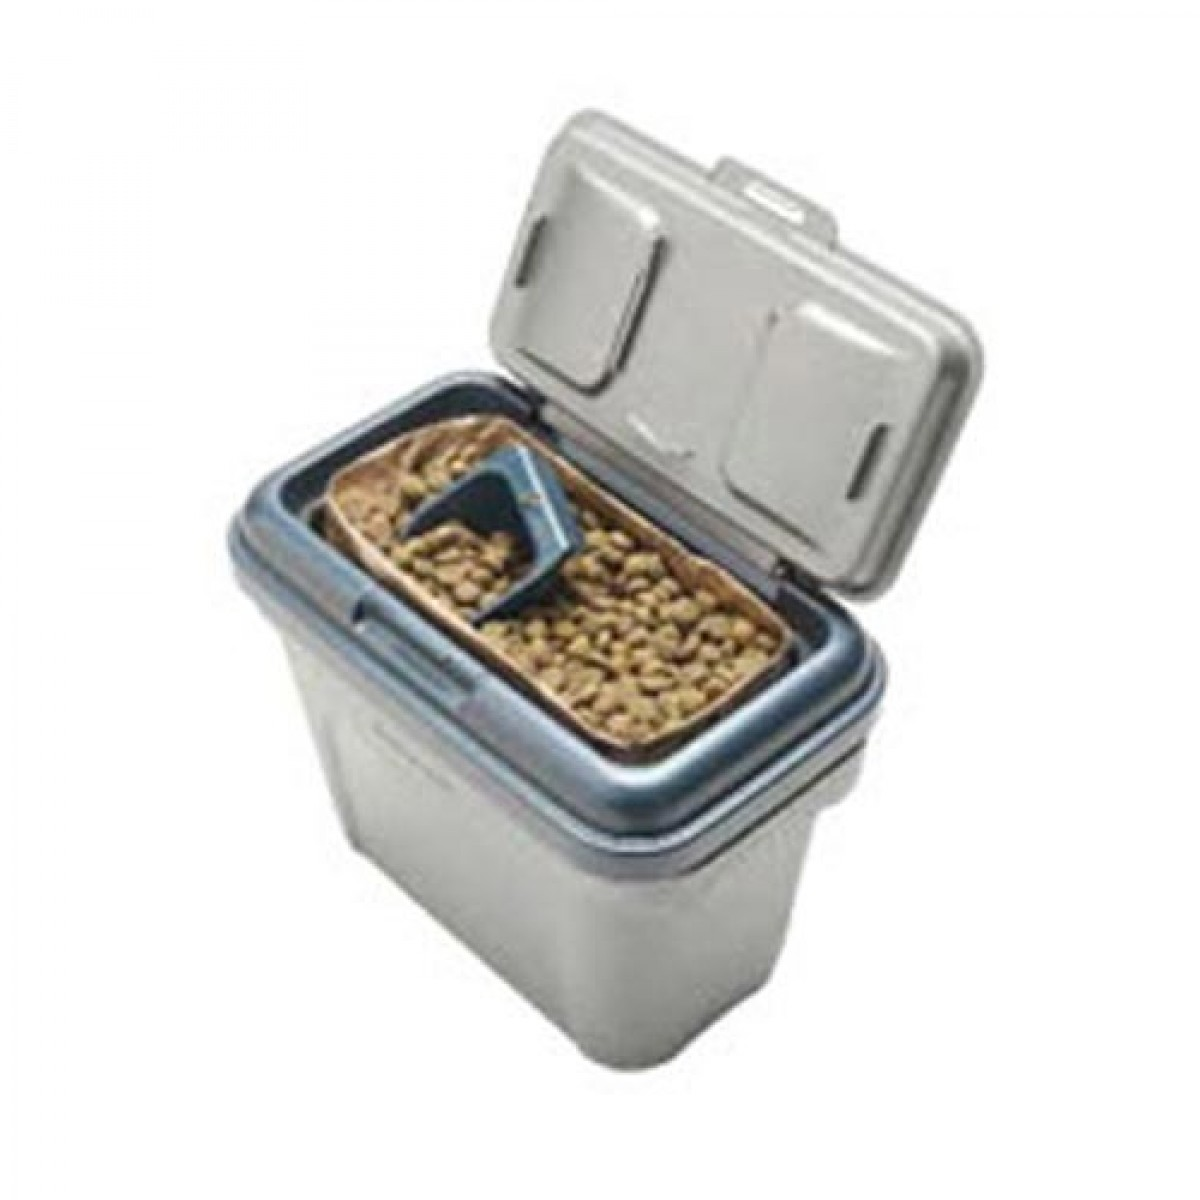 sc 1 st  Big Alu0027s Pets & Rubbermaid Scoopu0027n Store Pet Food Storage